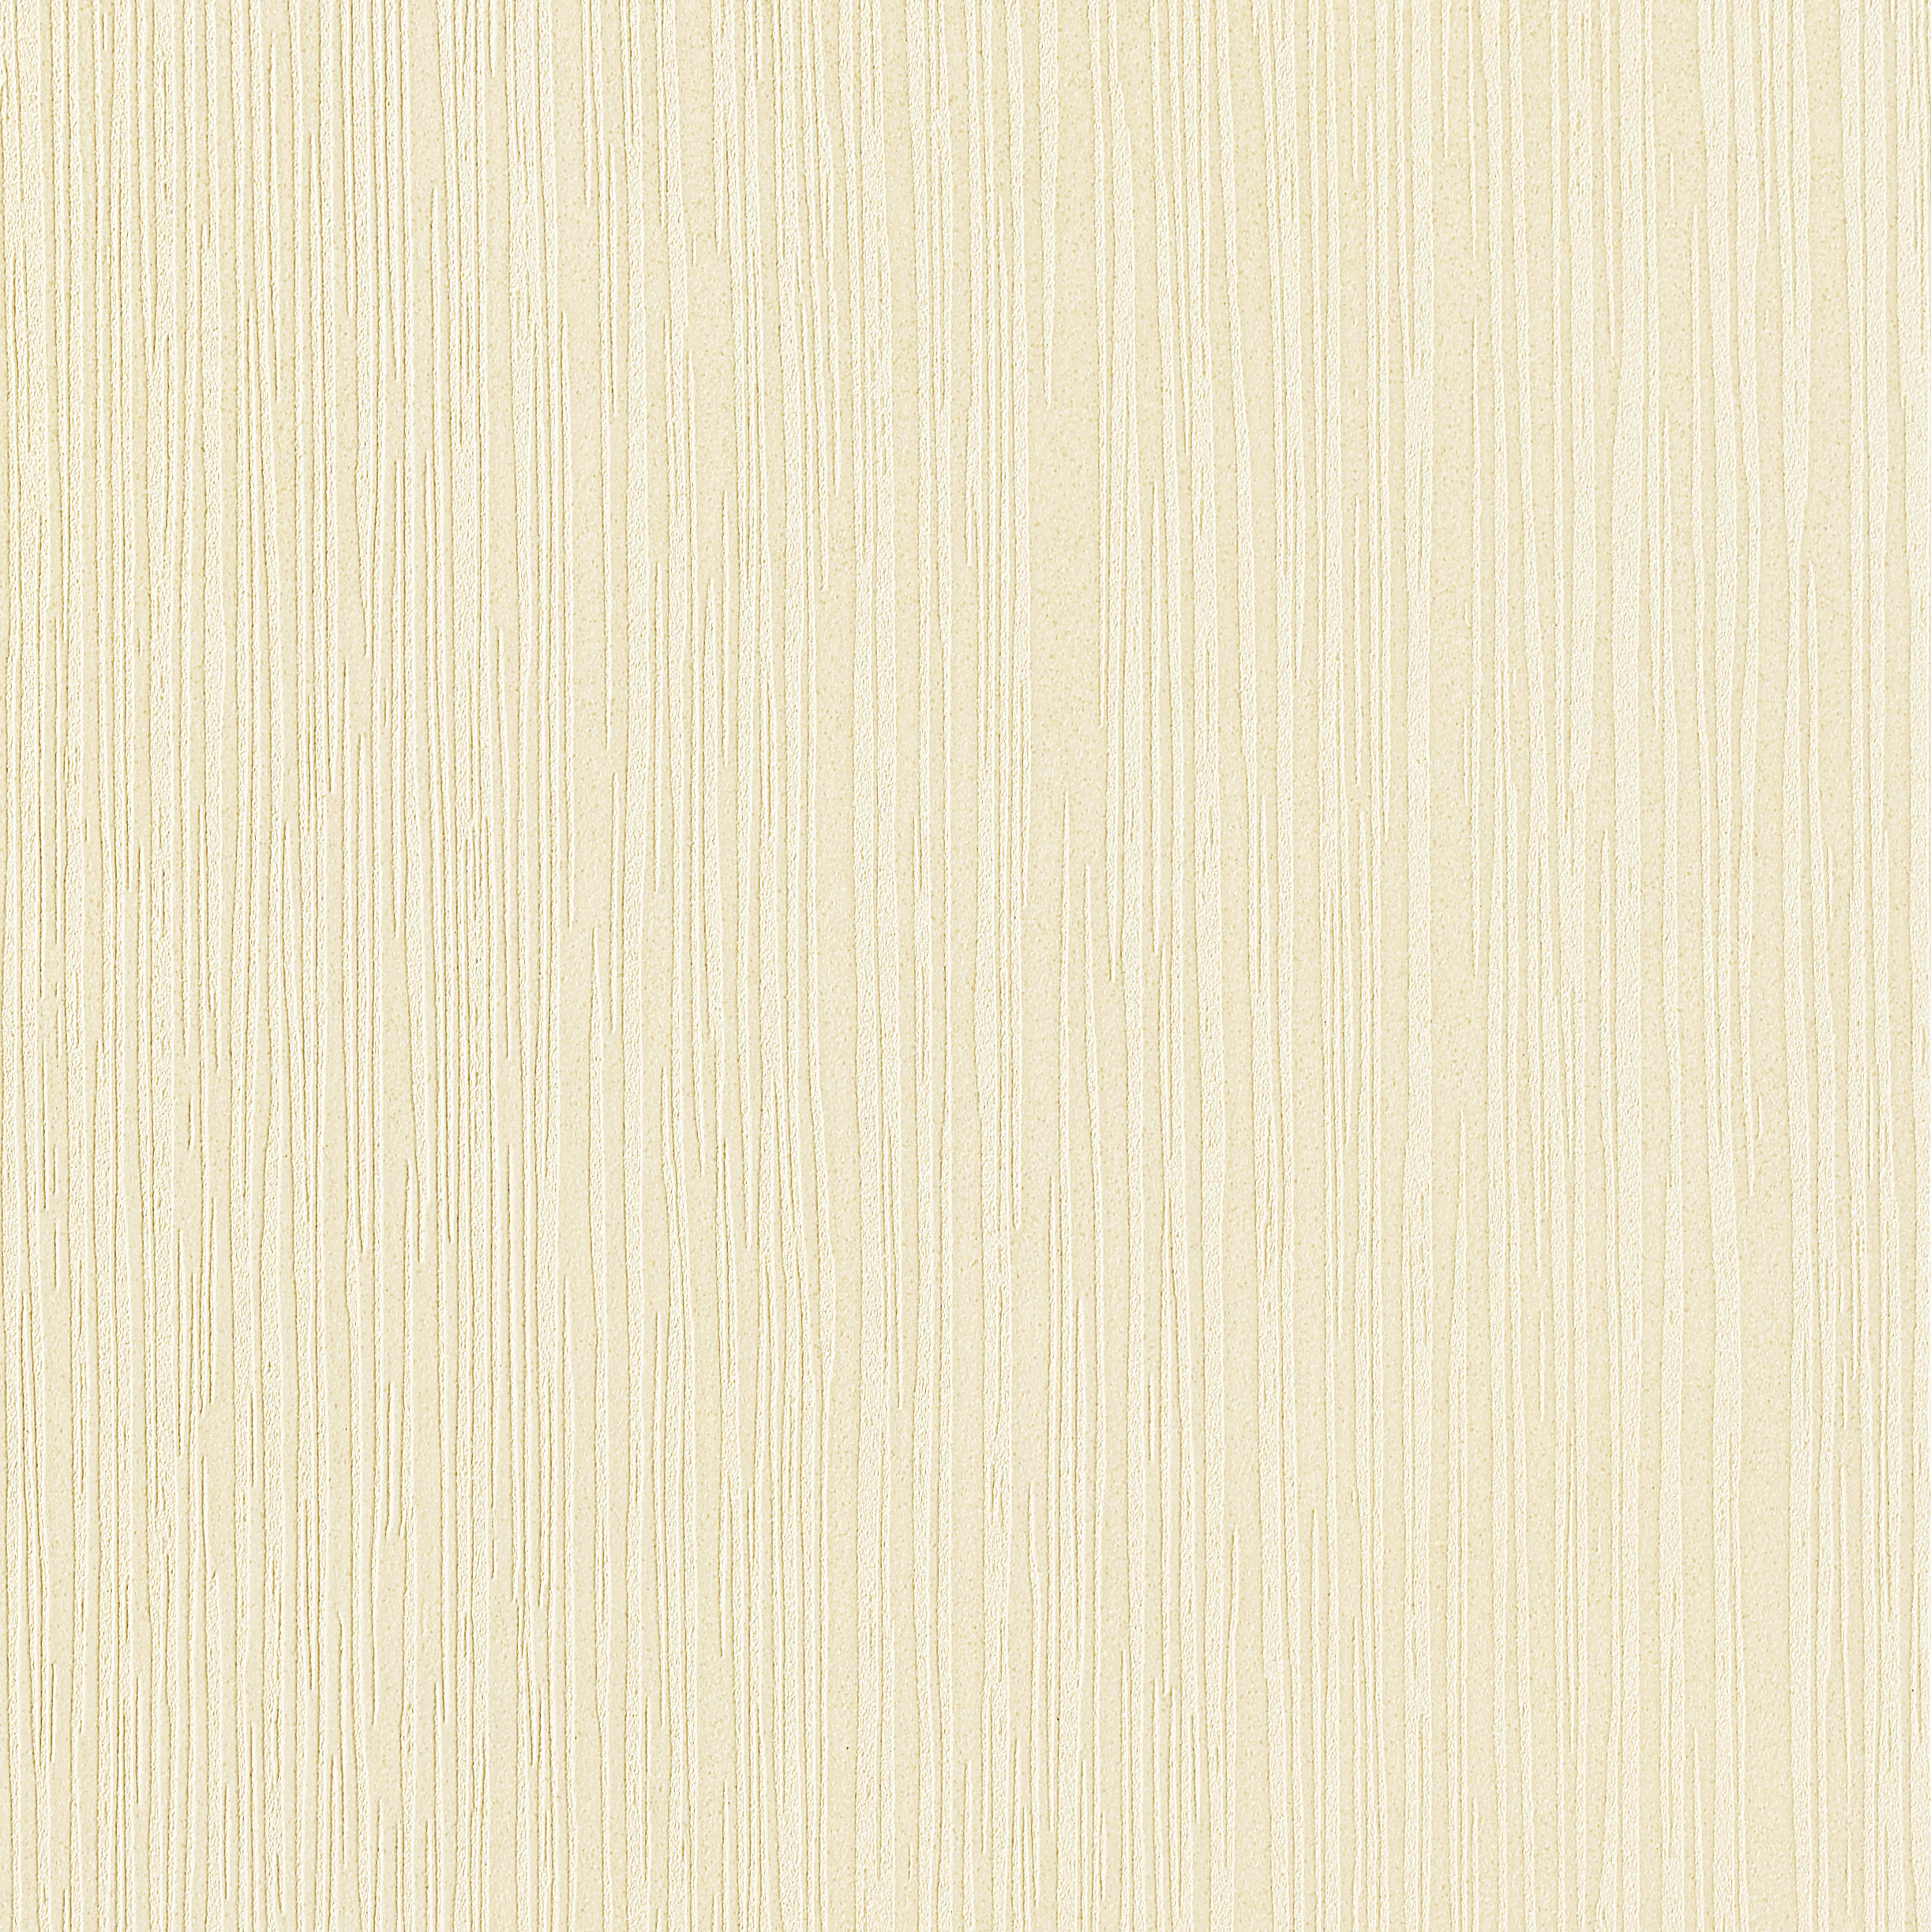 Porcelain Tile | Bentley Series - HSLBW60292 | by Hospitality Finishes